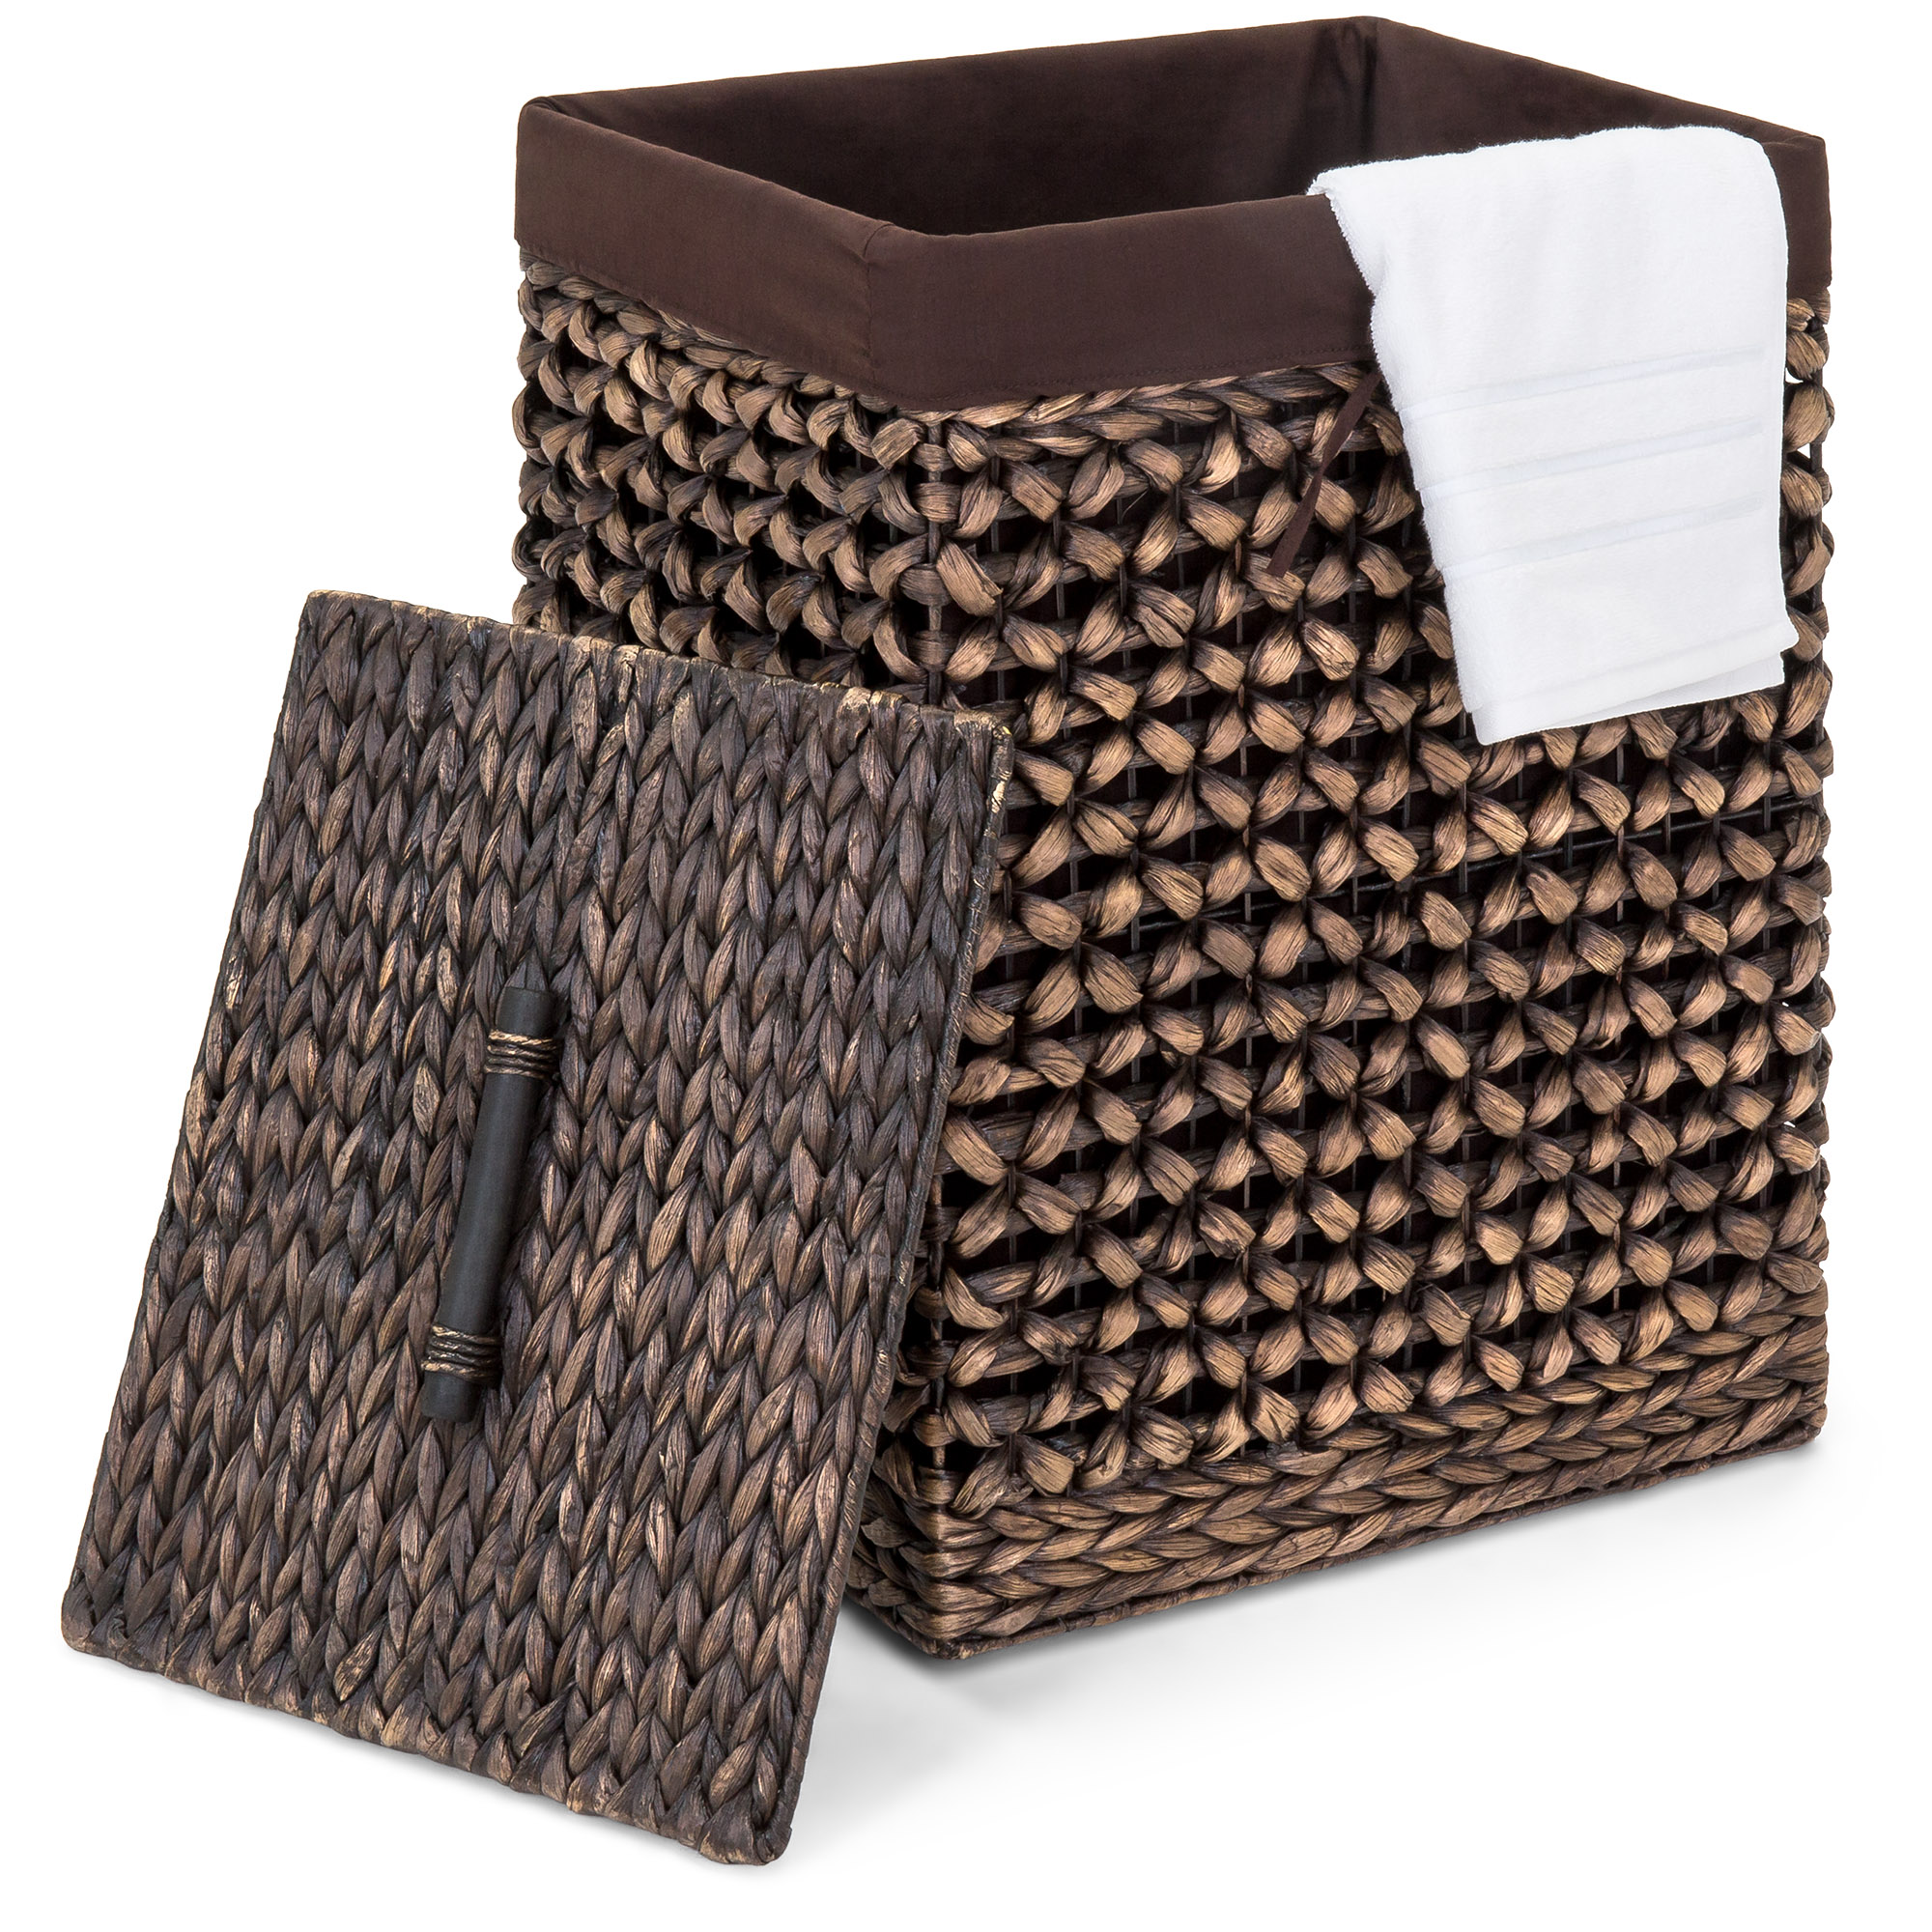 Set of 4 Brown Woven Storage Baskets Removable Linen Liners Durable Metal Frame